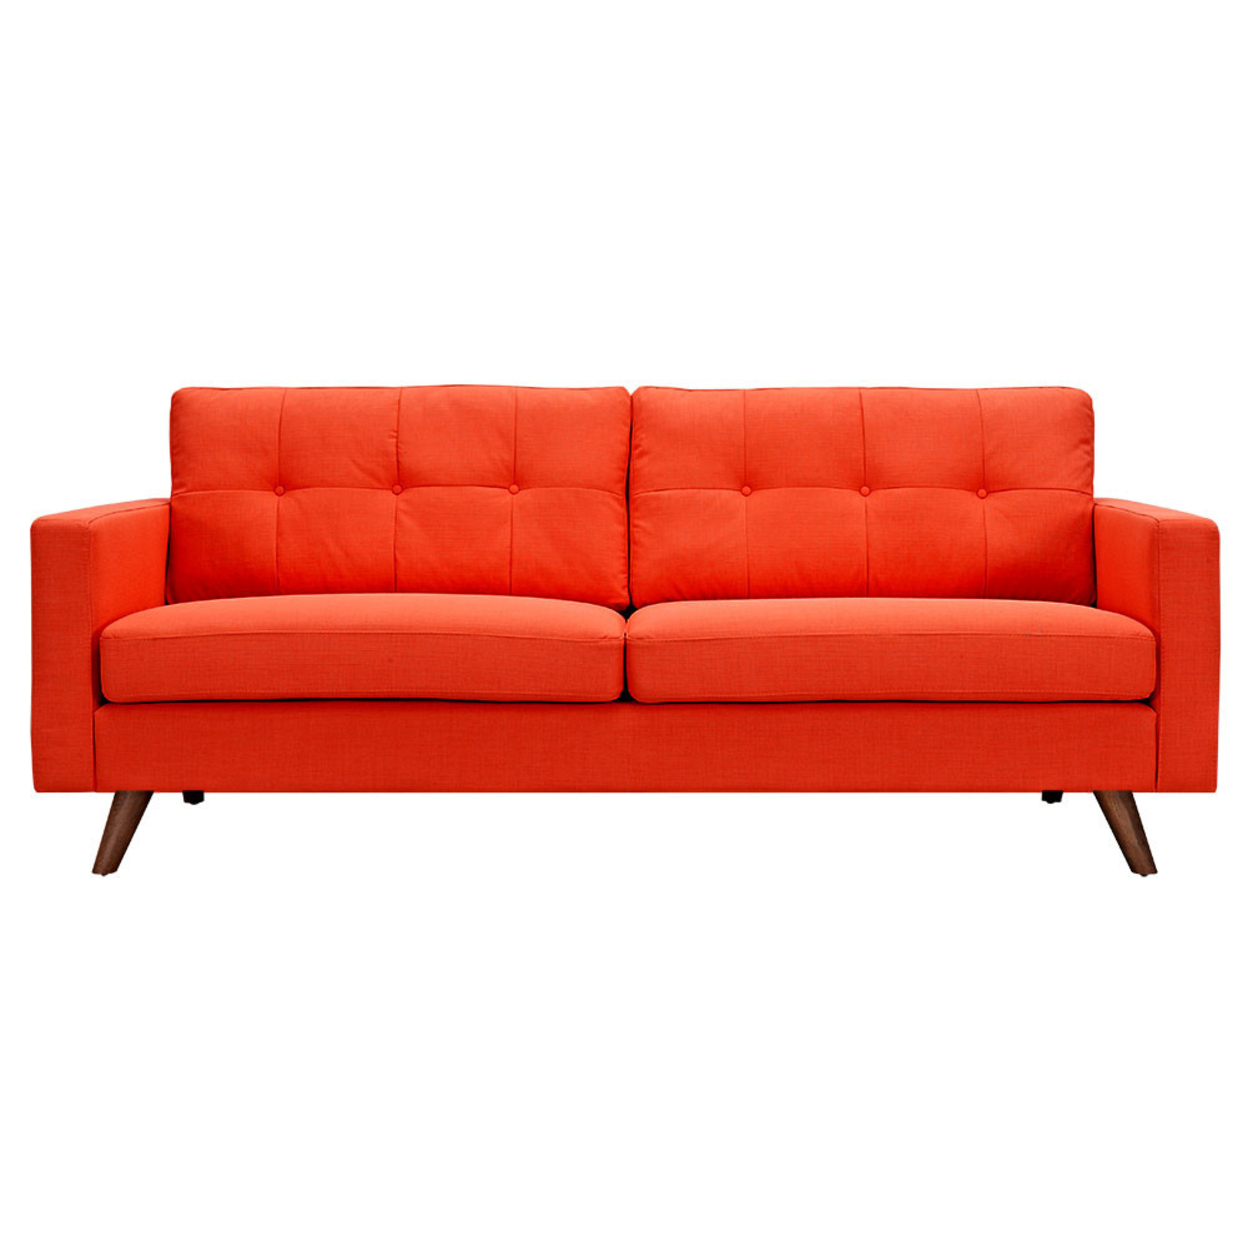 Sofa Orange Orange Sofa Usa